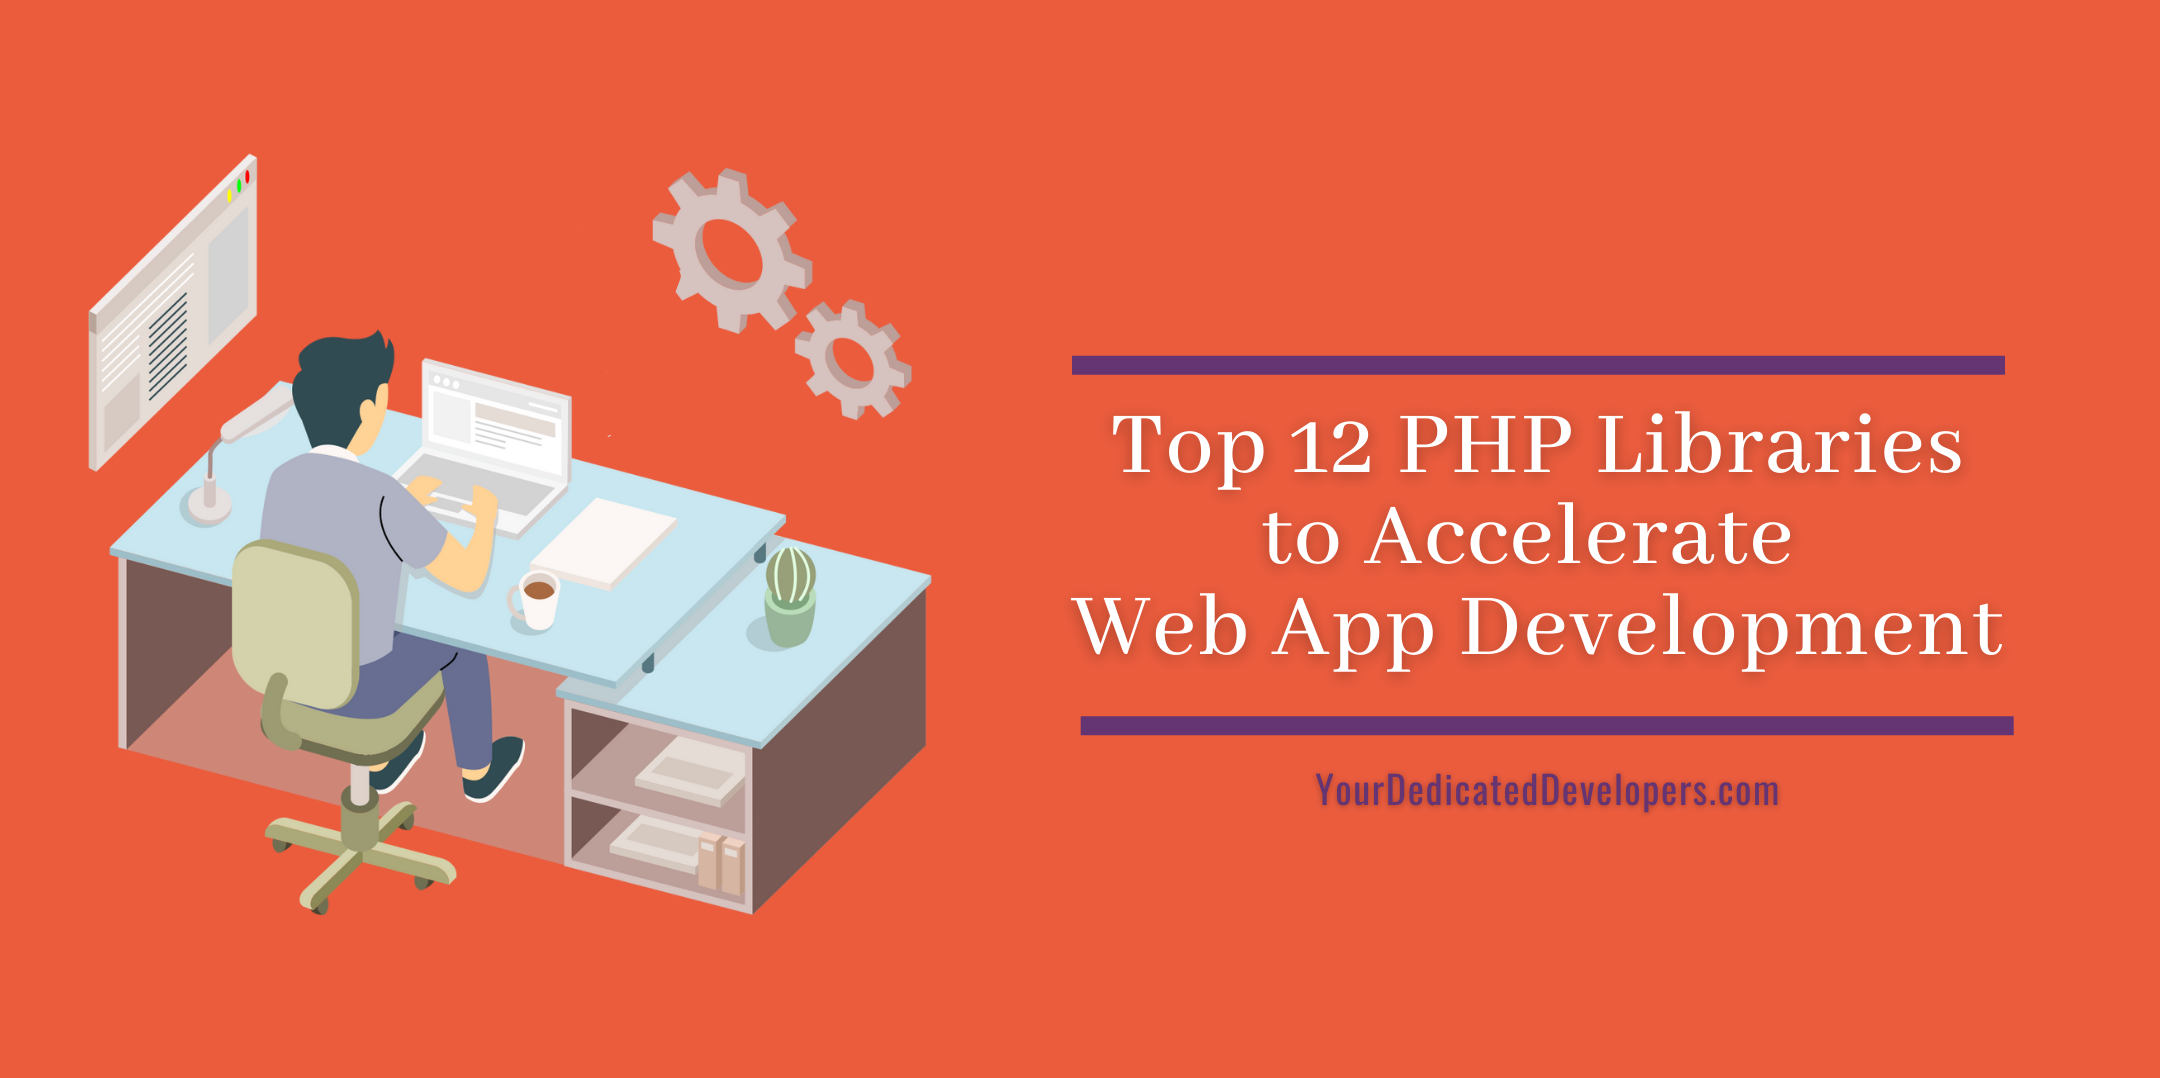 Top 12 PHP Libraries to Accelerate Web App Development